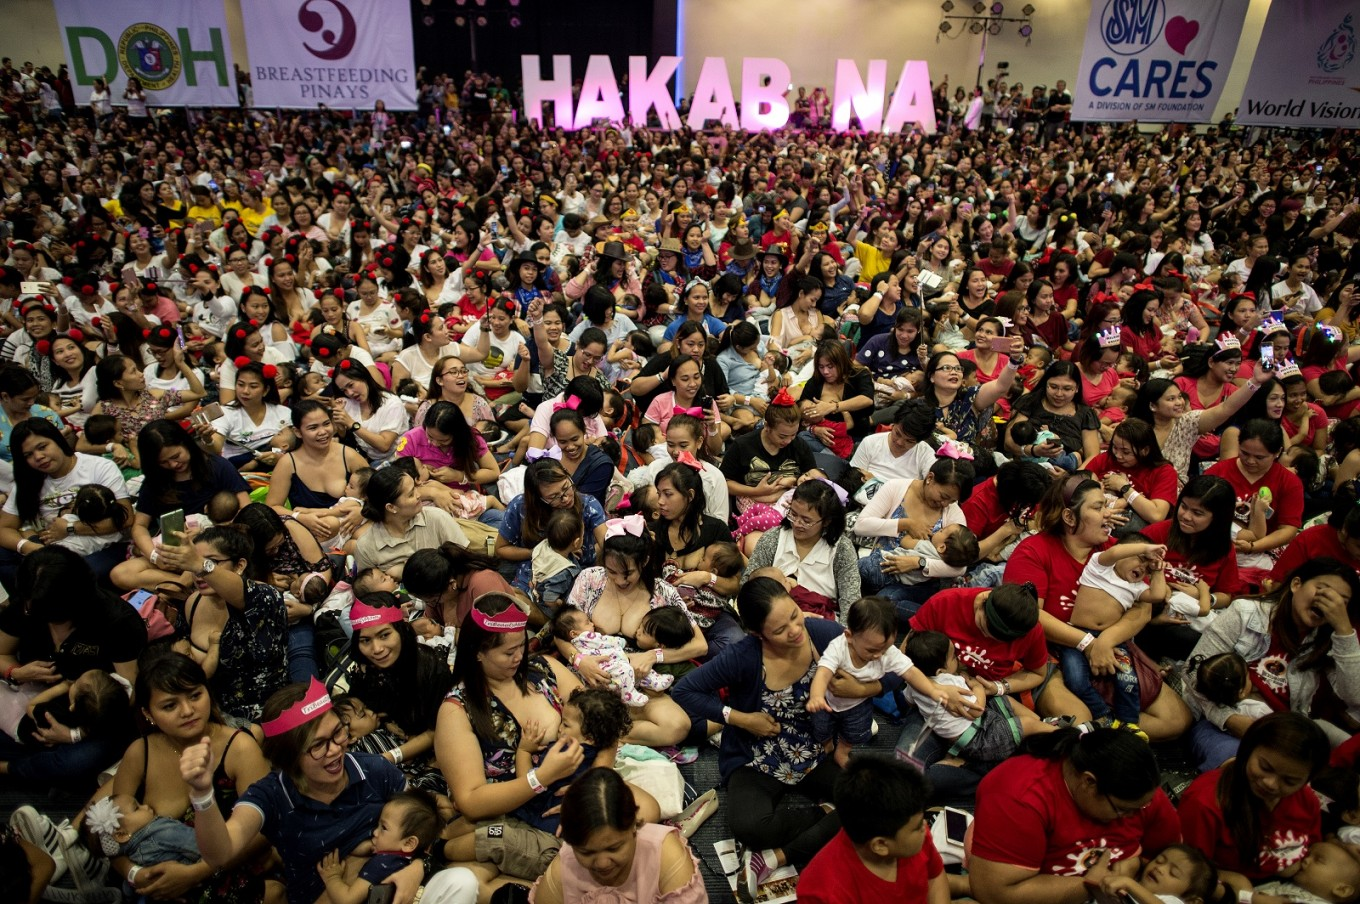 Hundreds of Philippine moms in show of support for breastfeeding